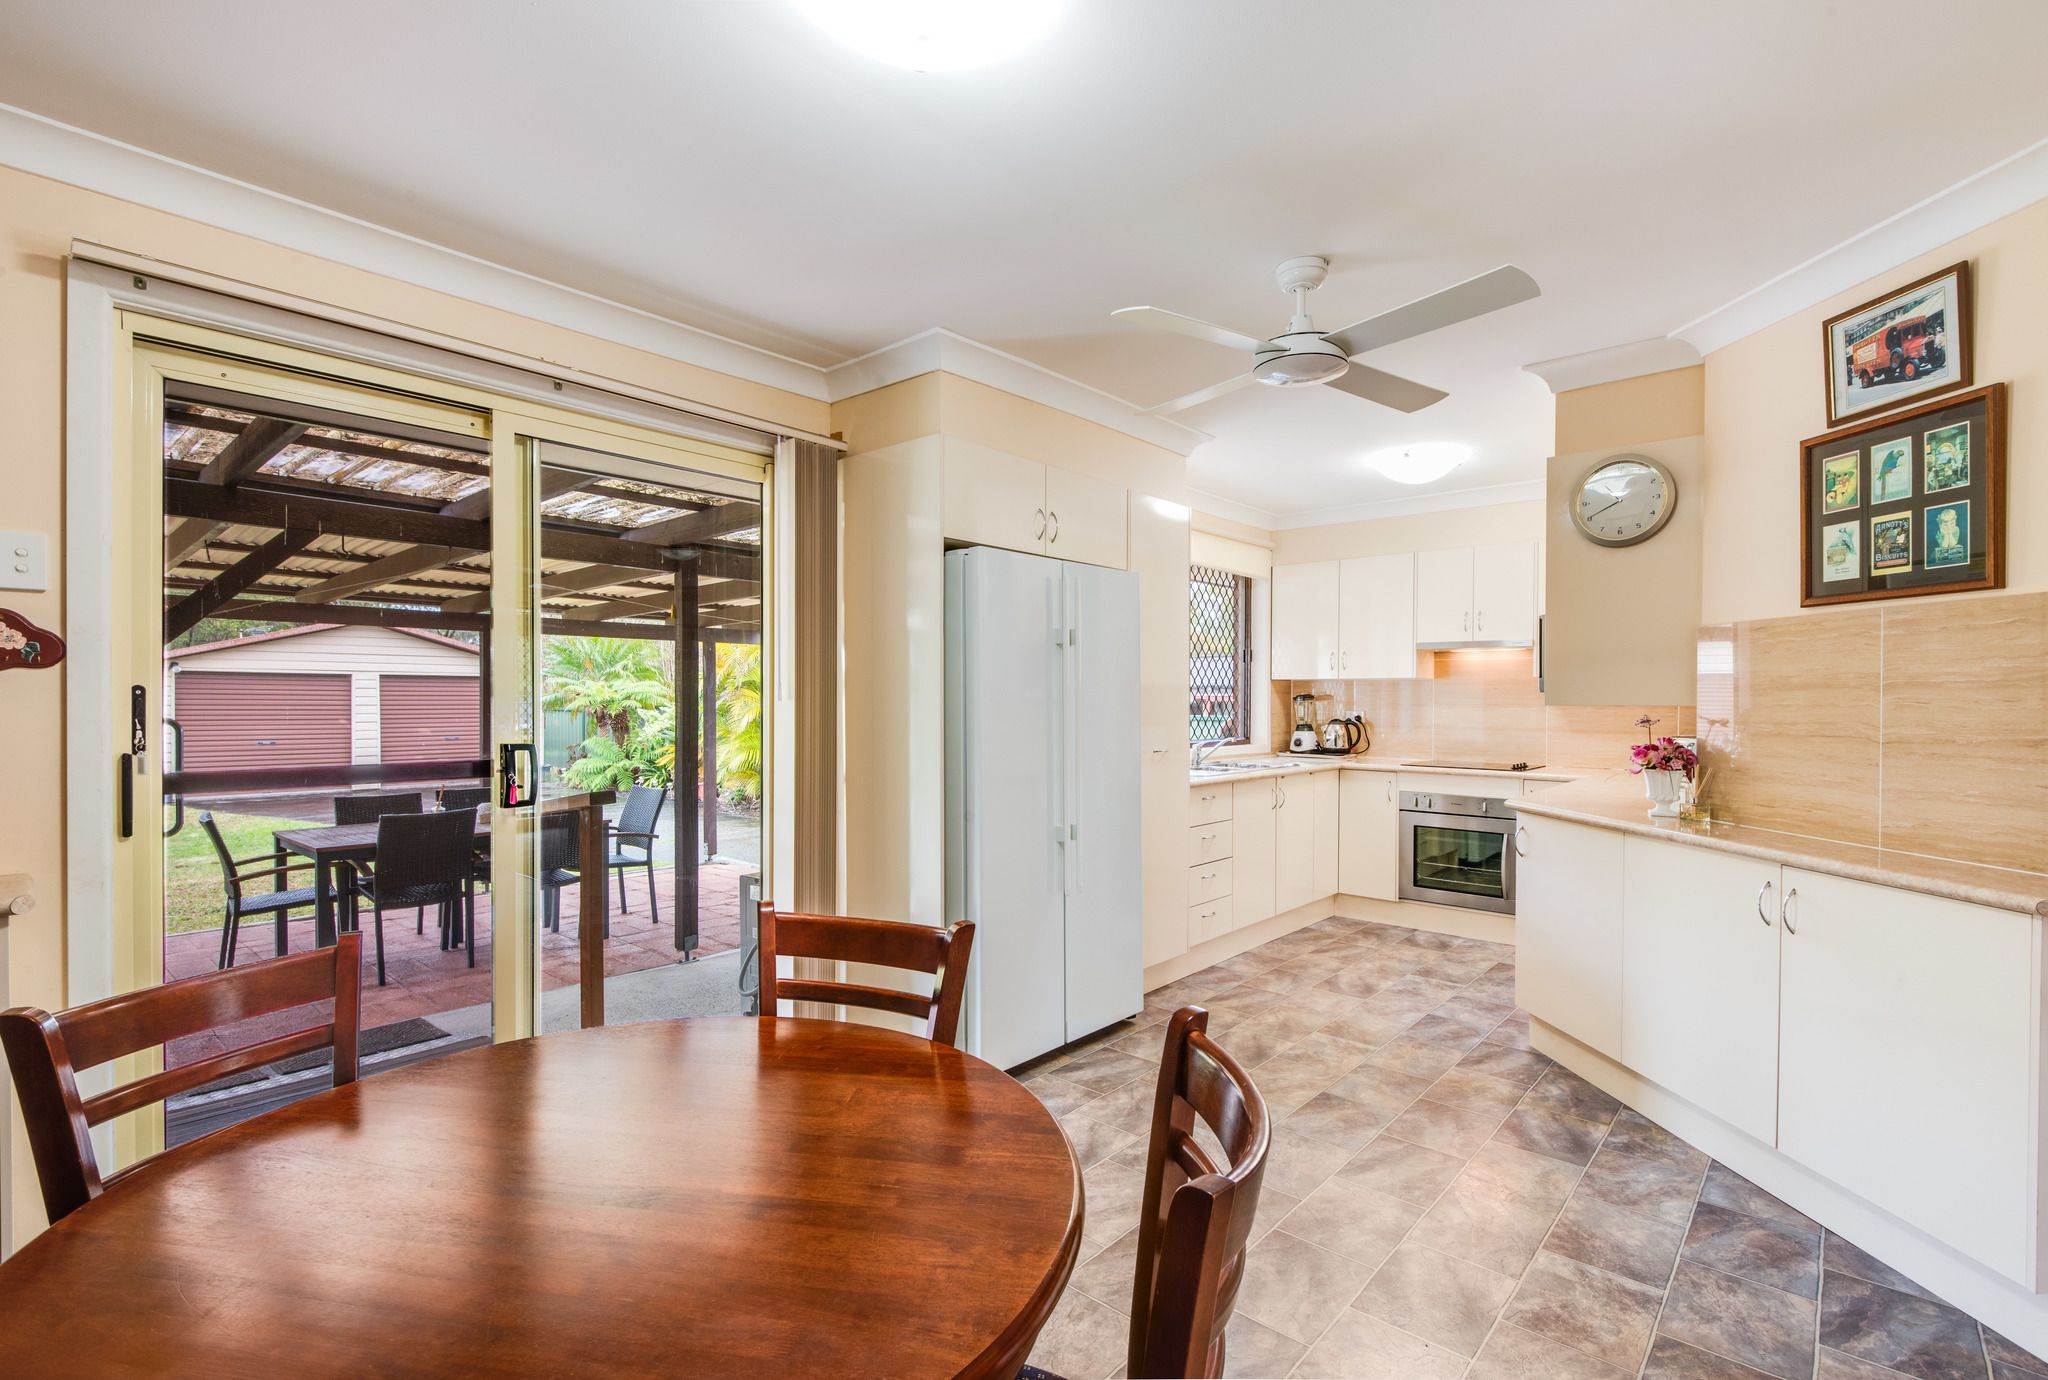 34 Kendall Road Empire Bay 2257